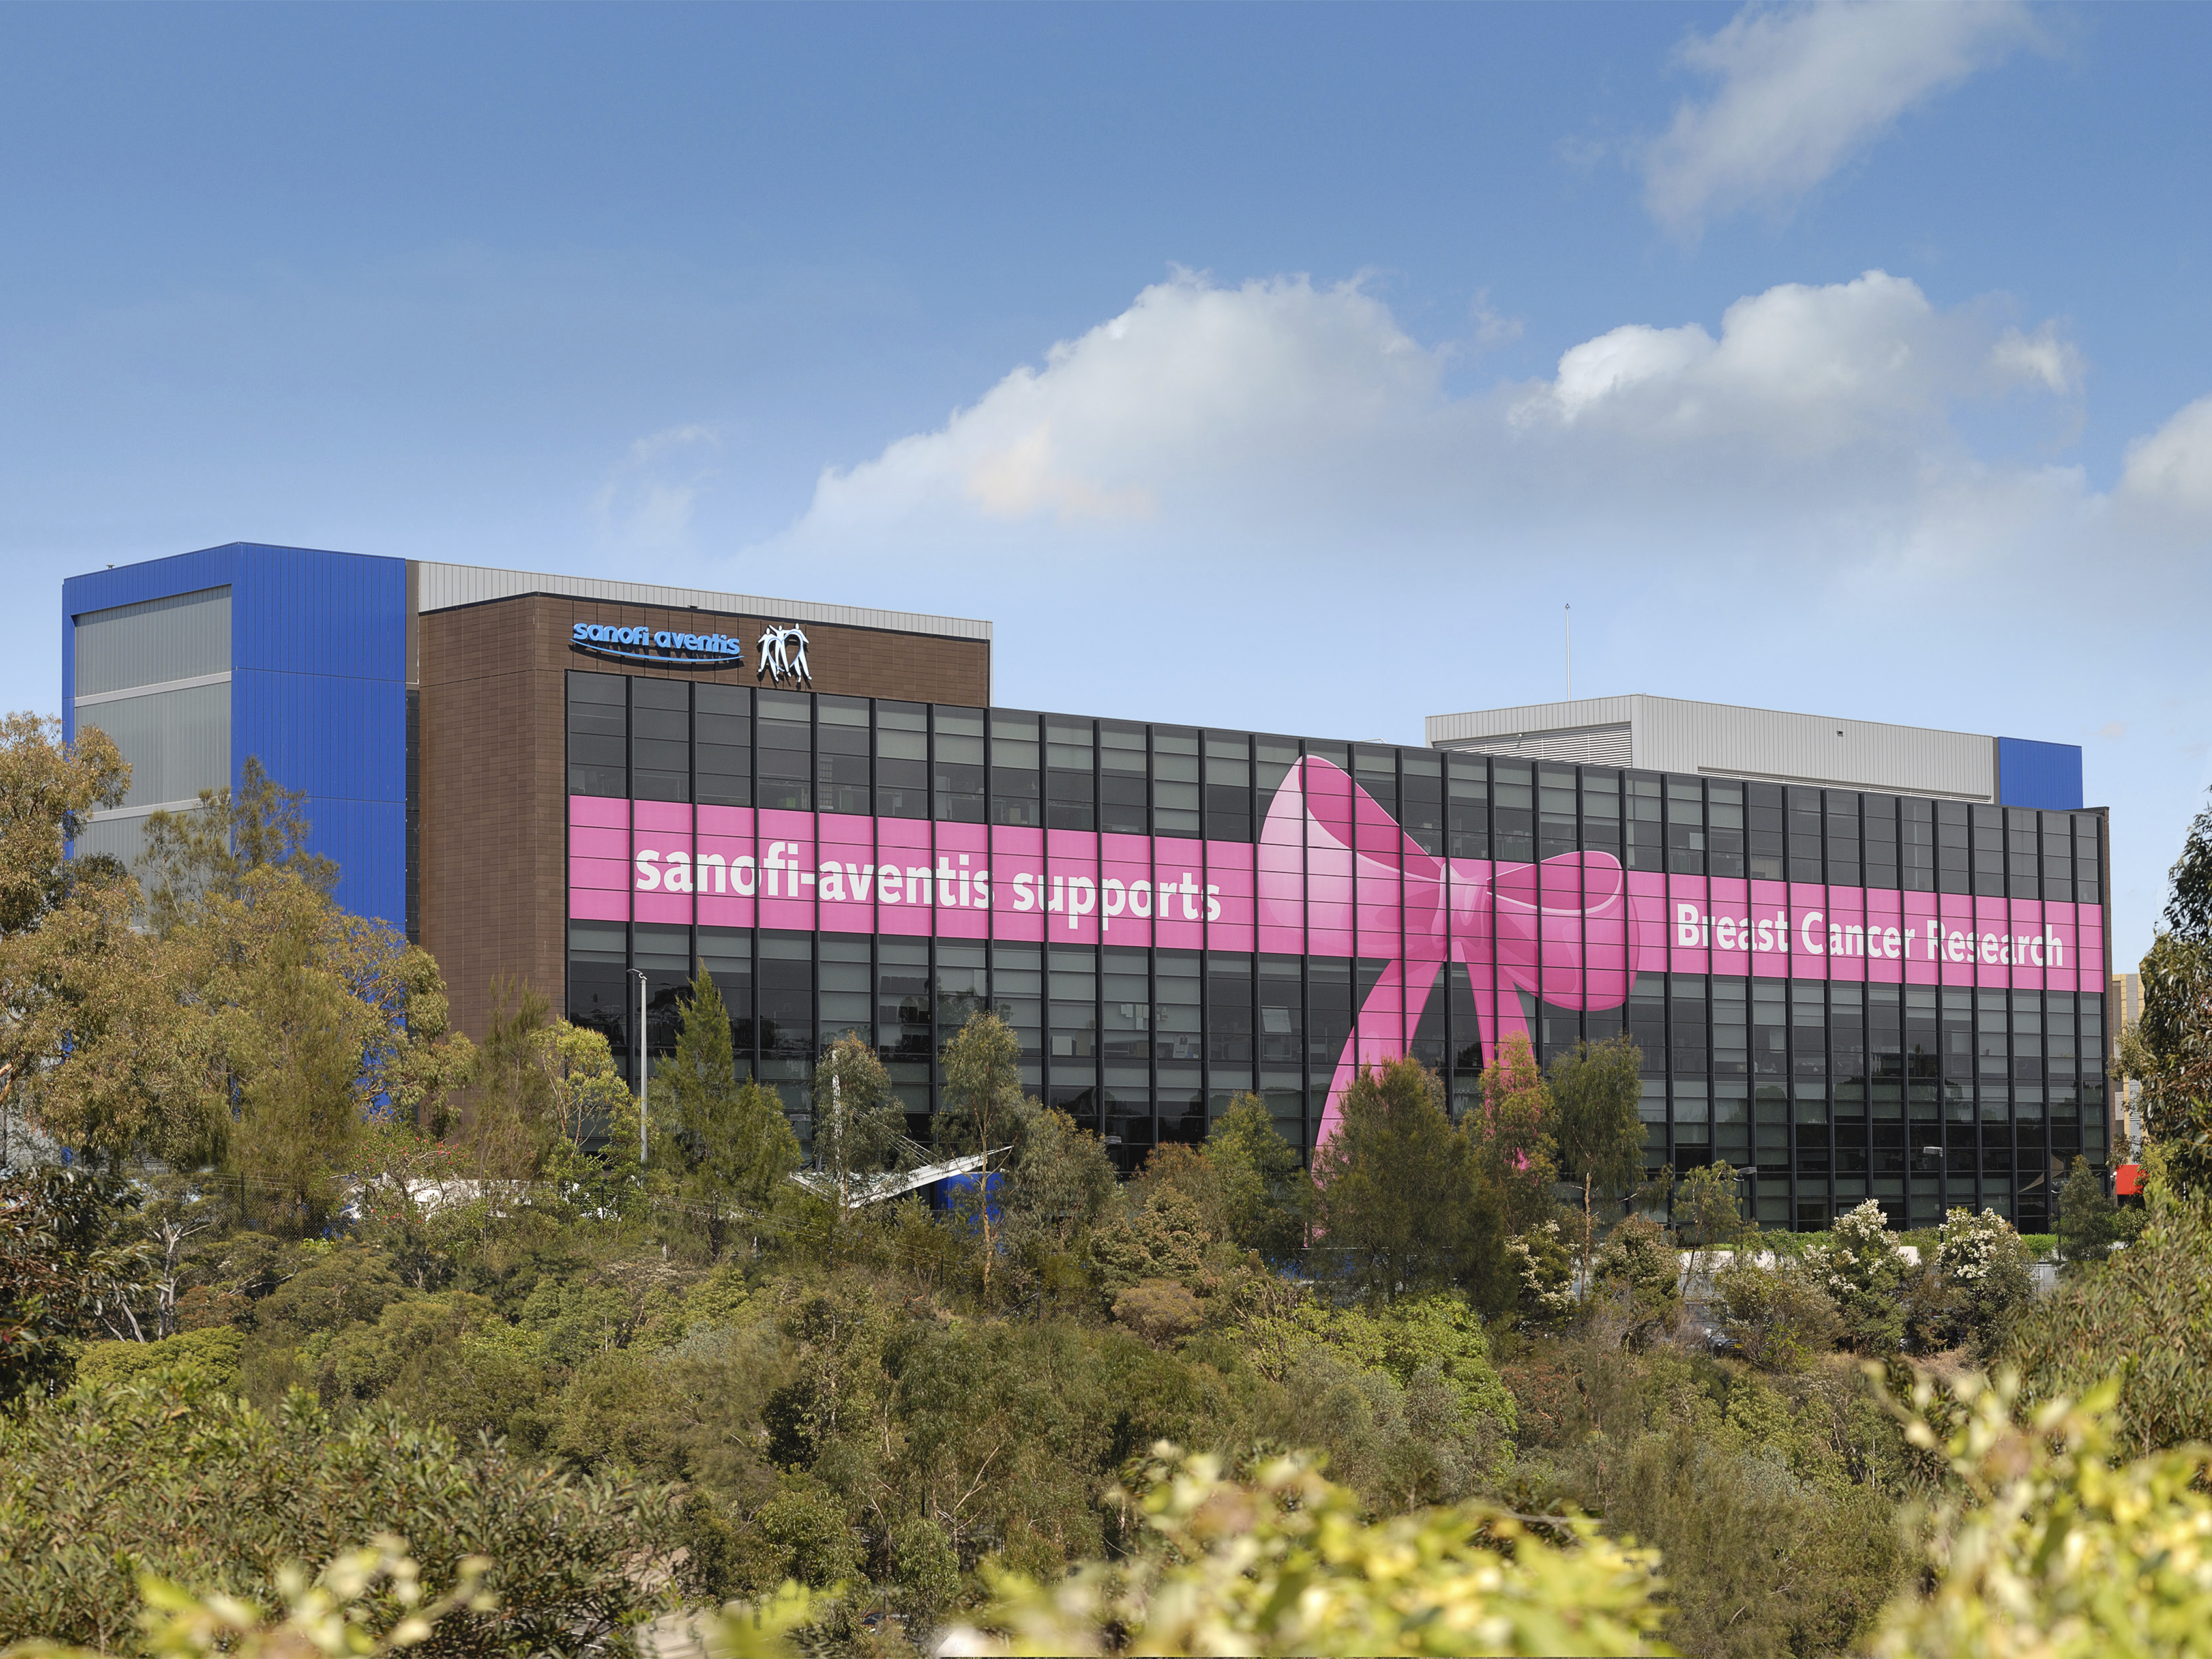 Building wrap - Sanofi supports breast cancer research